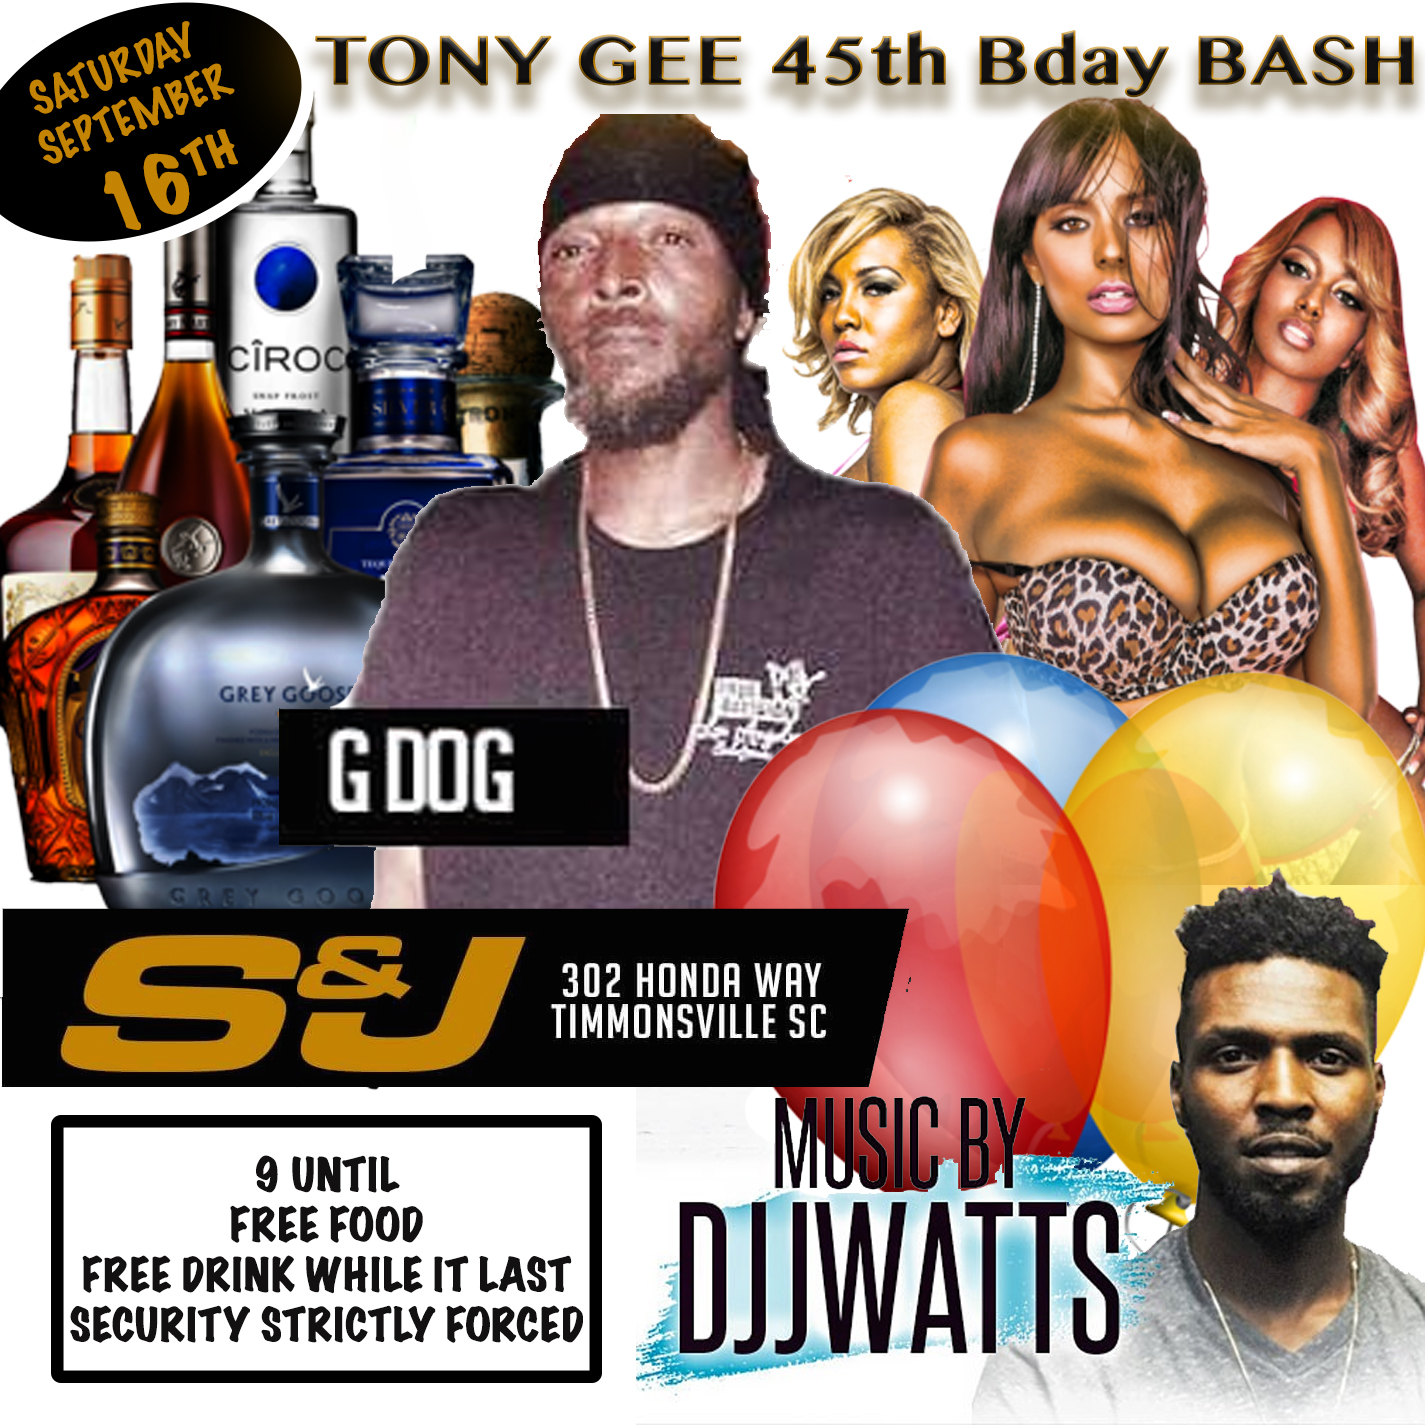 TONY GEE 45TH B DAY BASH